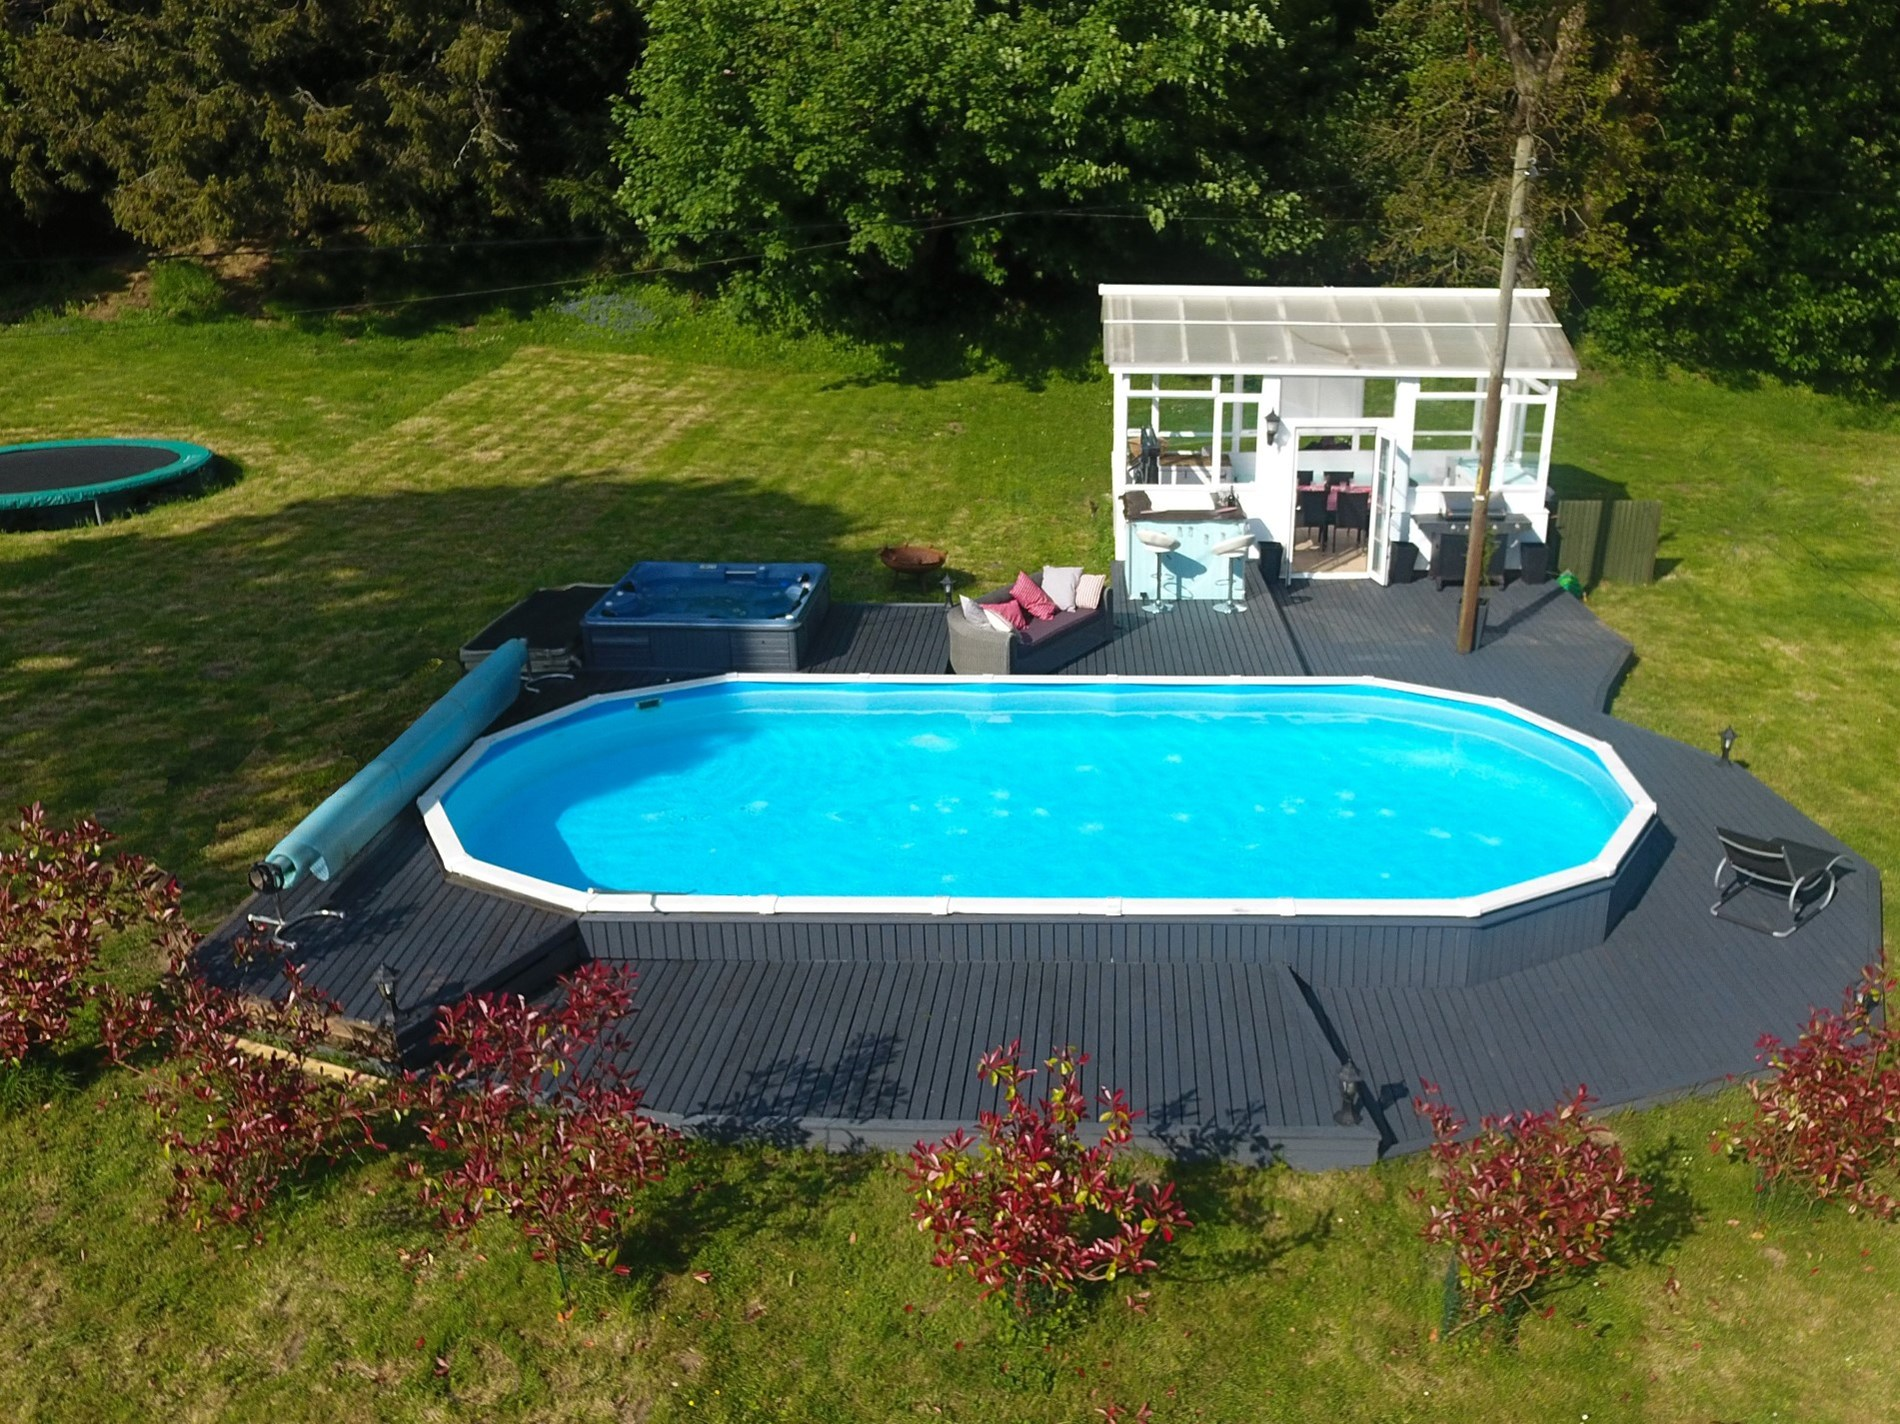 Spend lazy afternoons enjoying the hot tub, pool and summerhouse